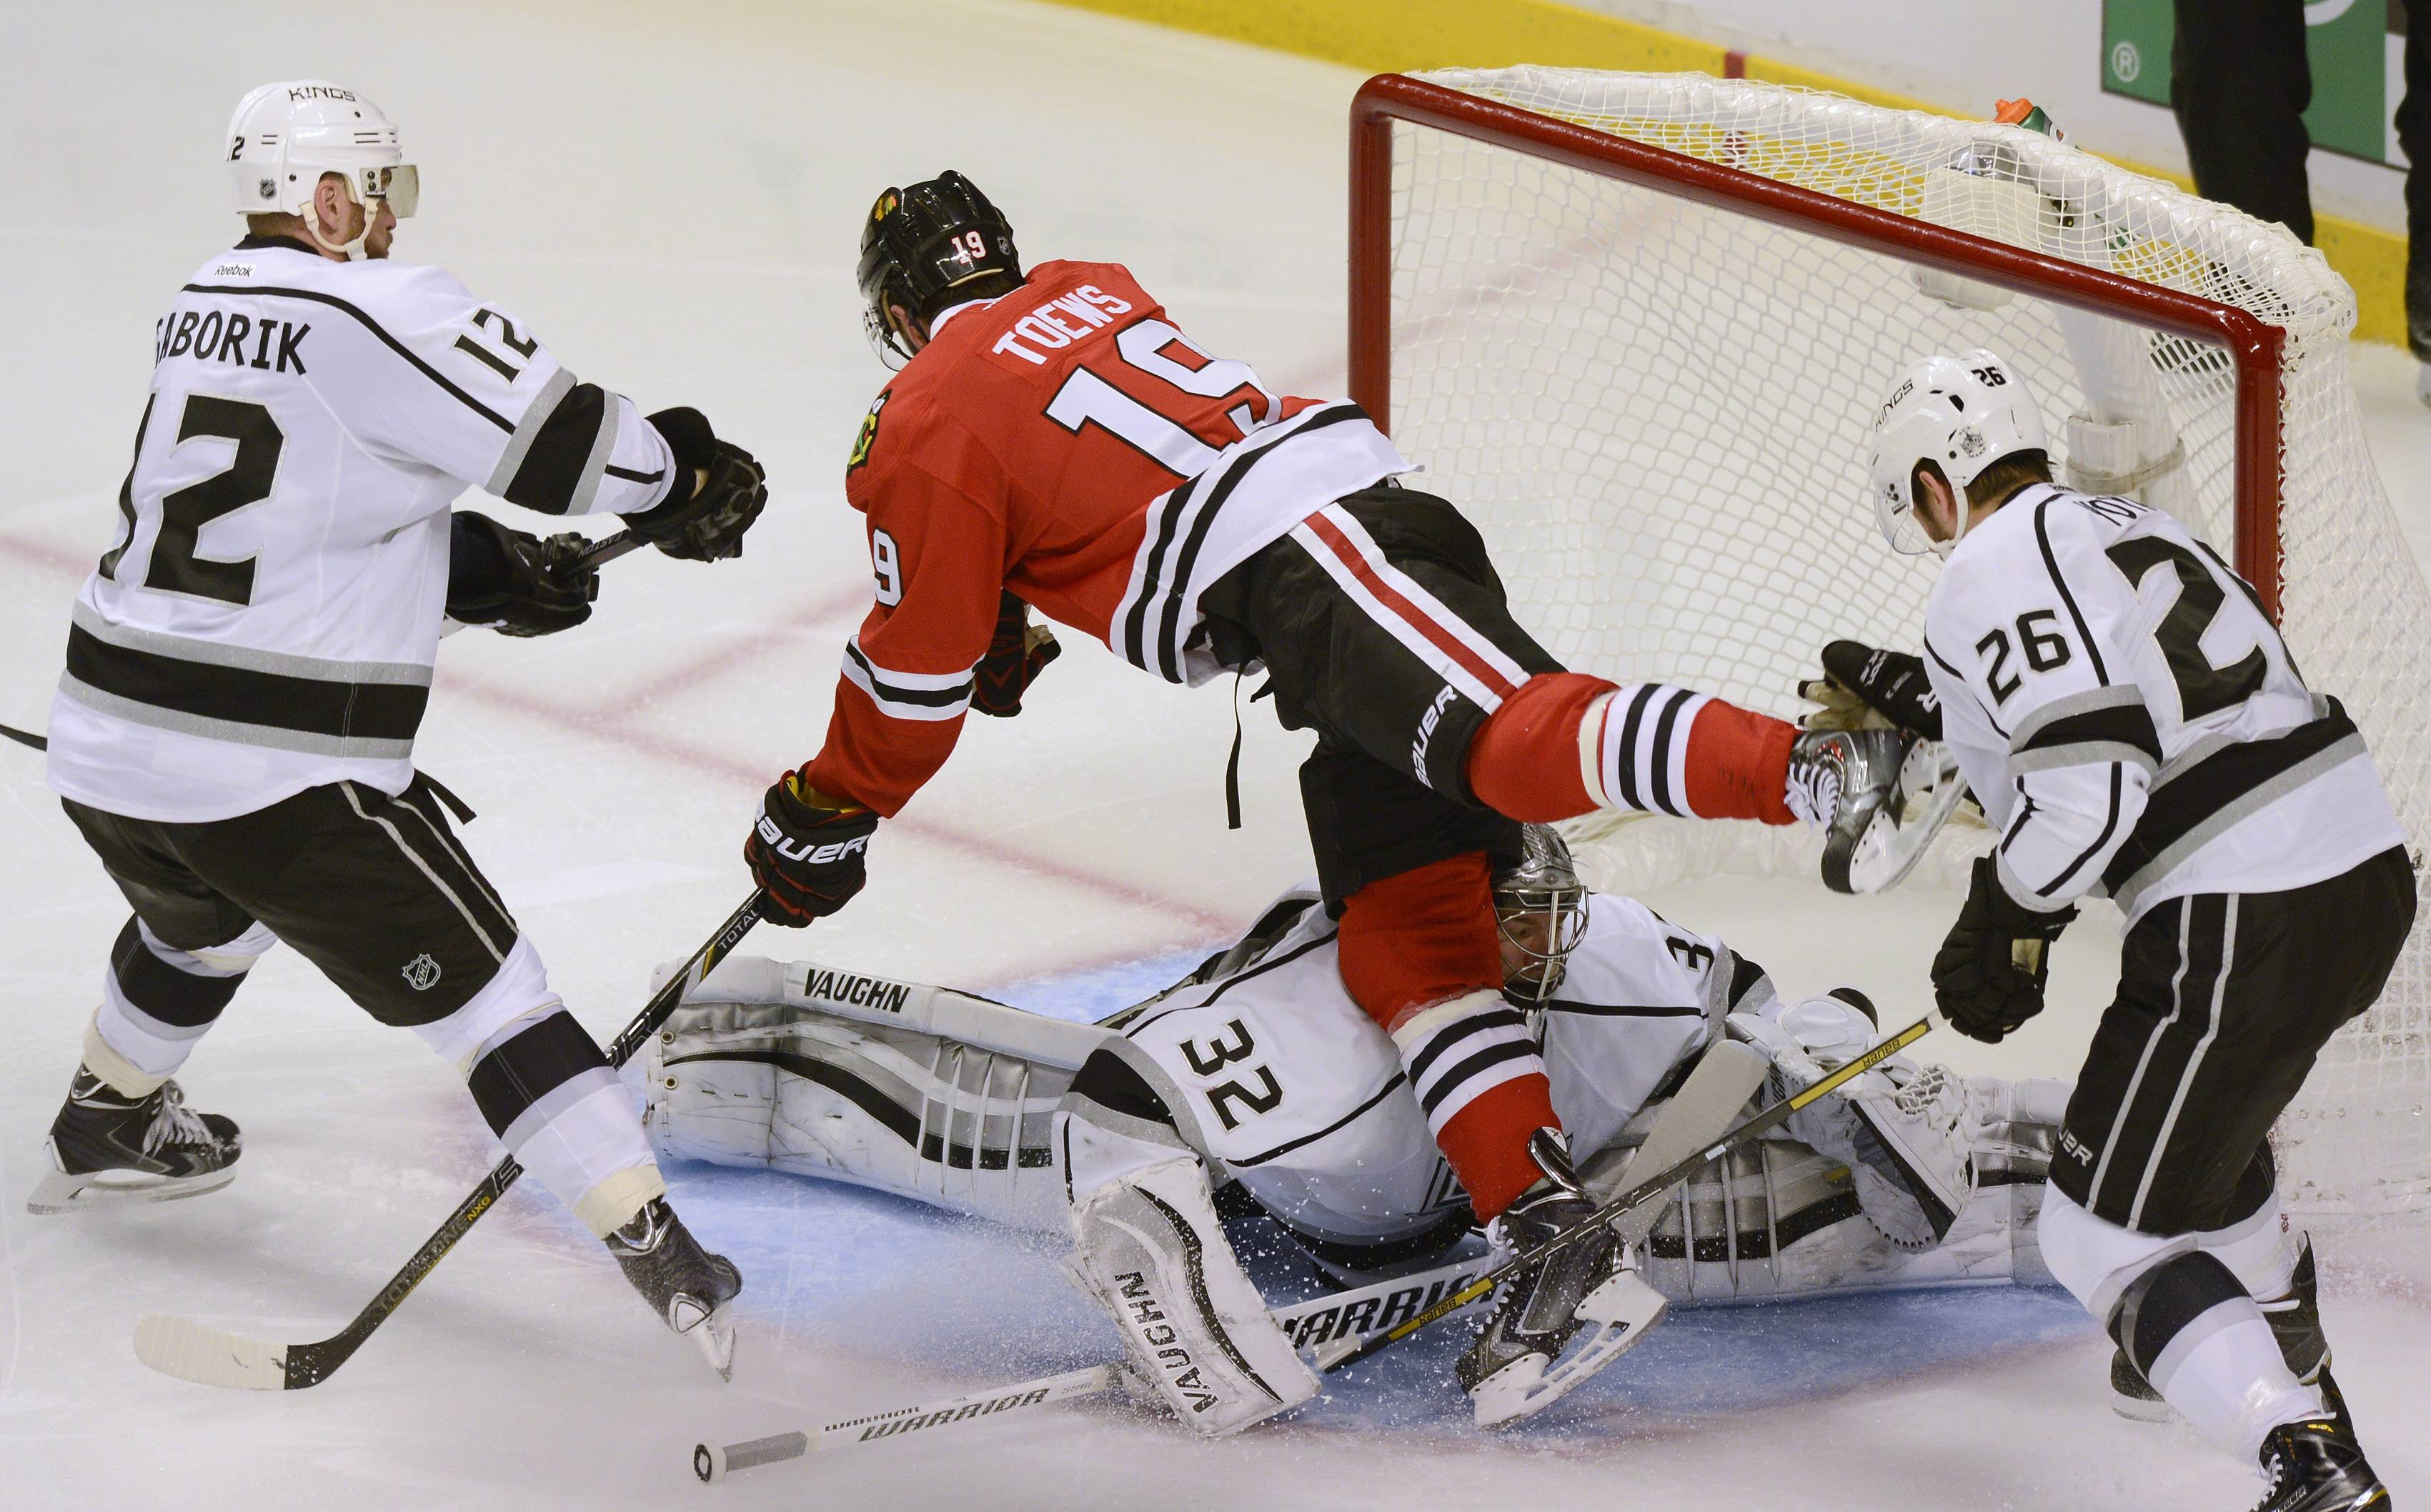 Blackhawks center Jonathan Toews makes contact with Los Angeles Kings goalie Jonathan Quick on a goal that wound up being disallowed during Sunday's game at United Center. Los Angeles Kings forward Marian Gaborik is at left, and teammate Slava Voynov is at right.